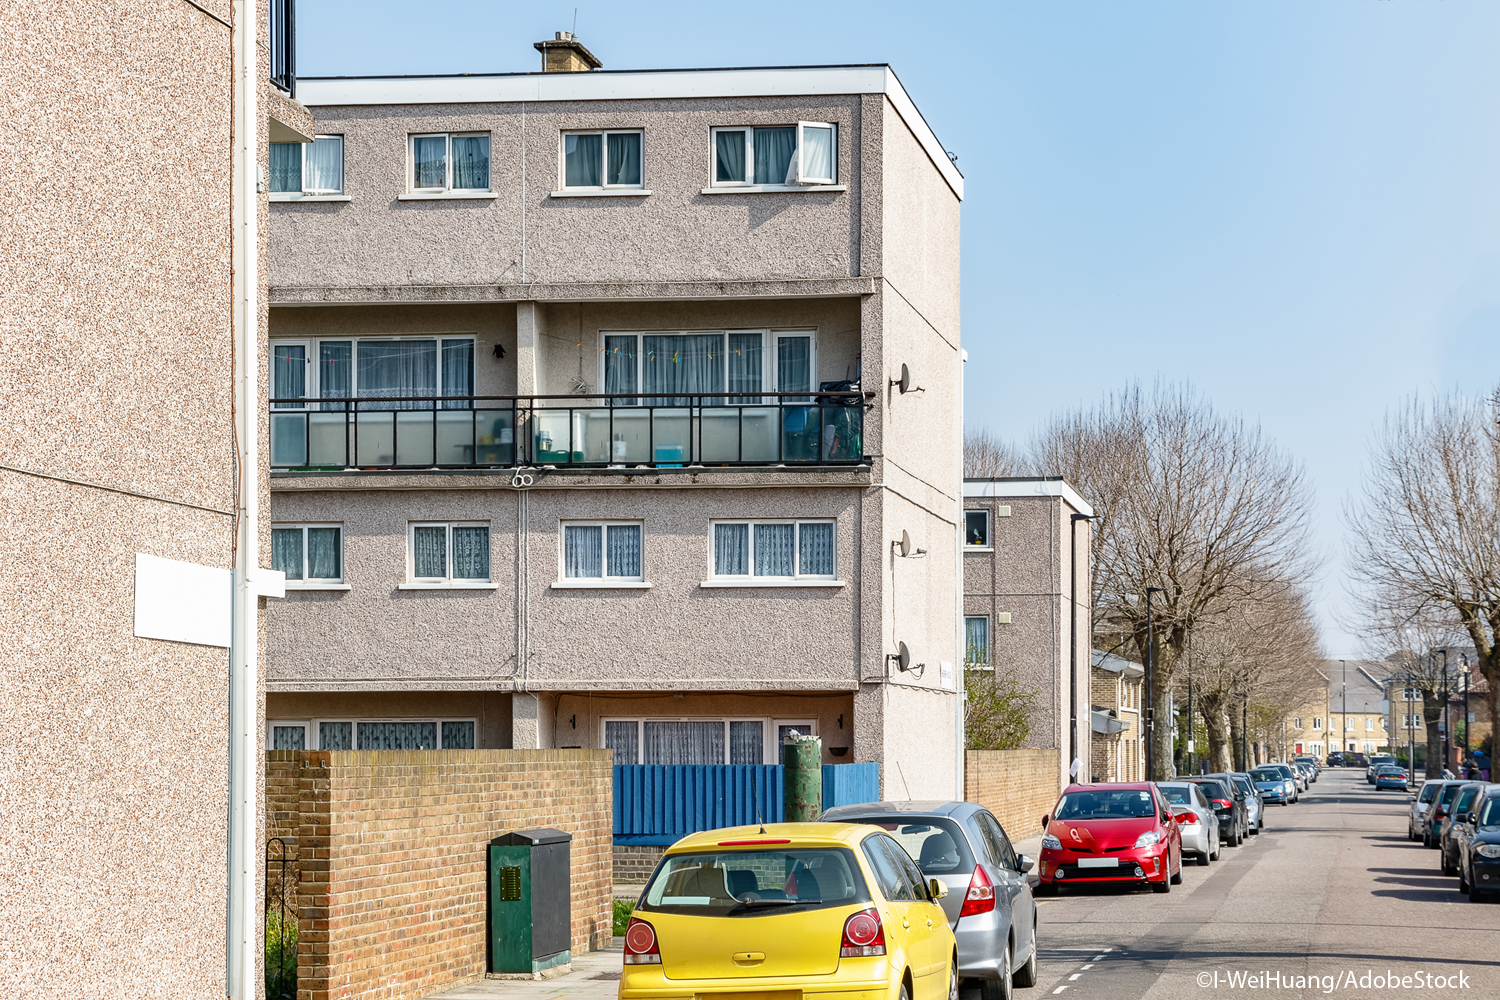 New survey shows extent of social and affordable housing crisis